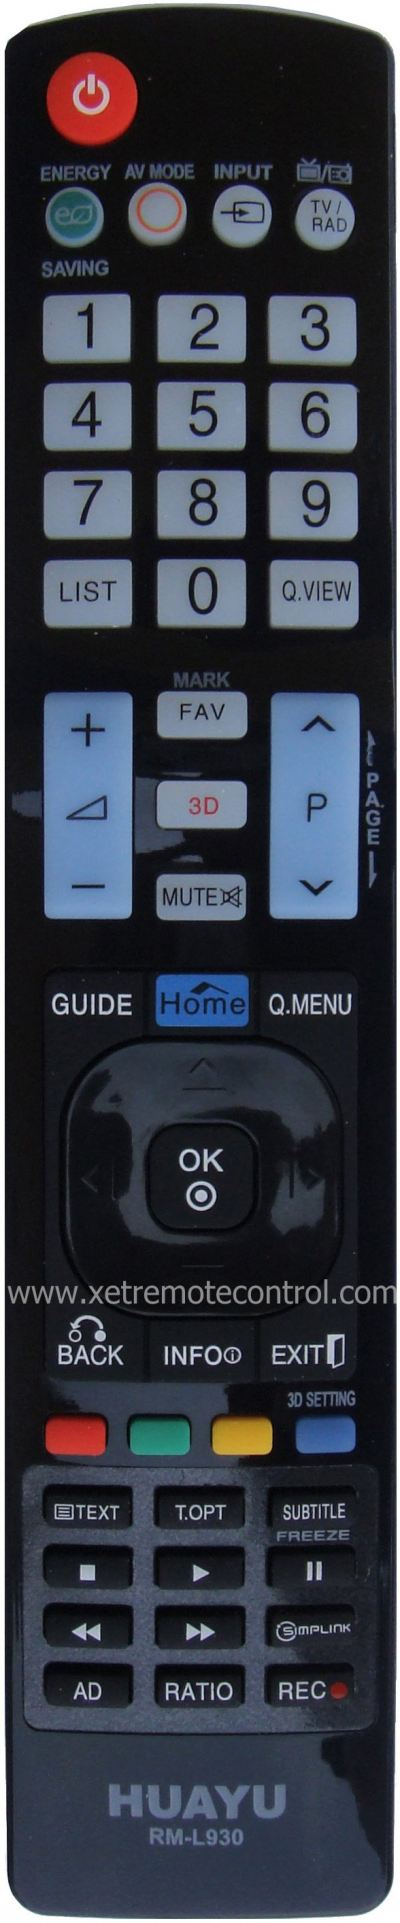 RM-L930 LG LCD/LED TV REMOTE CONTROL